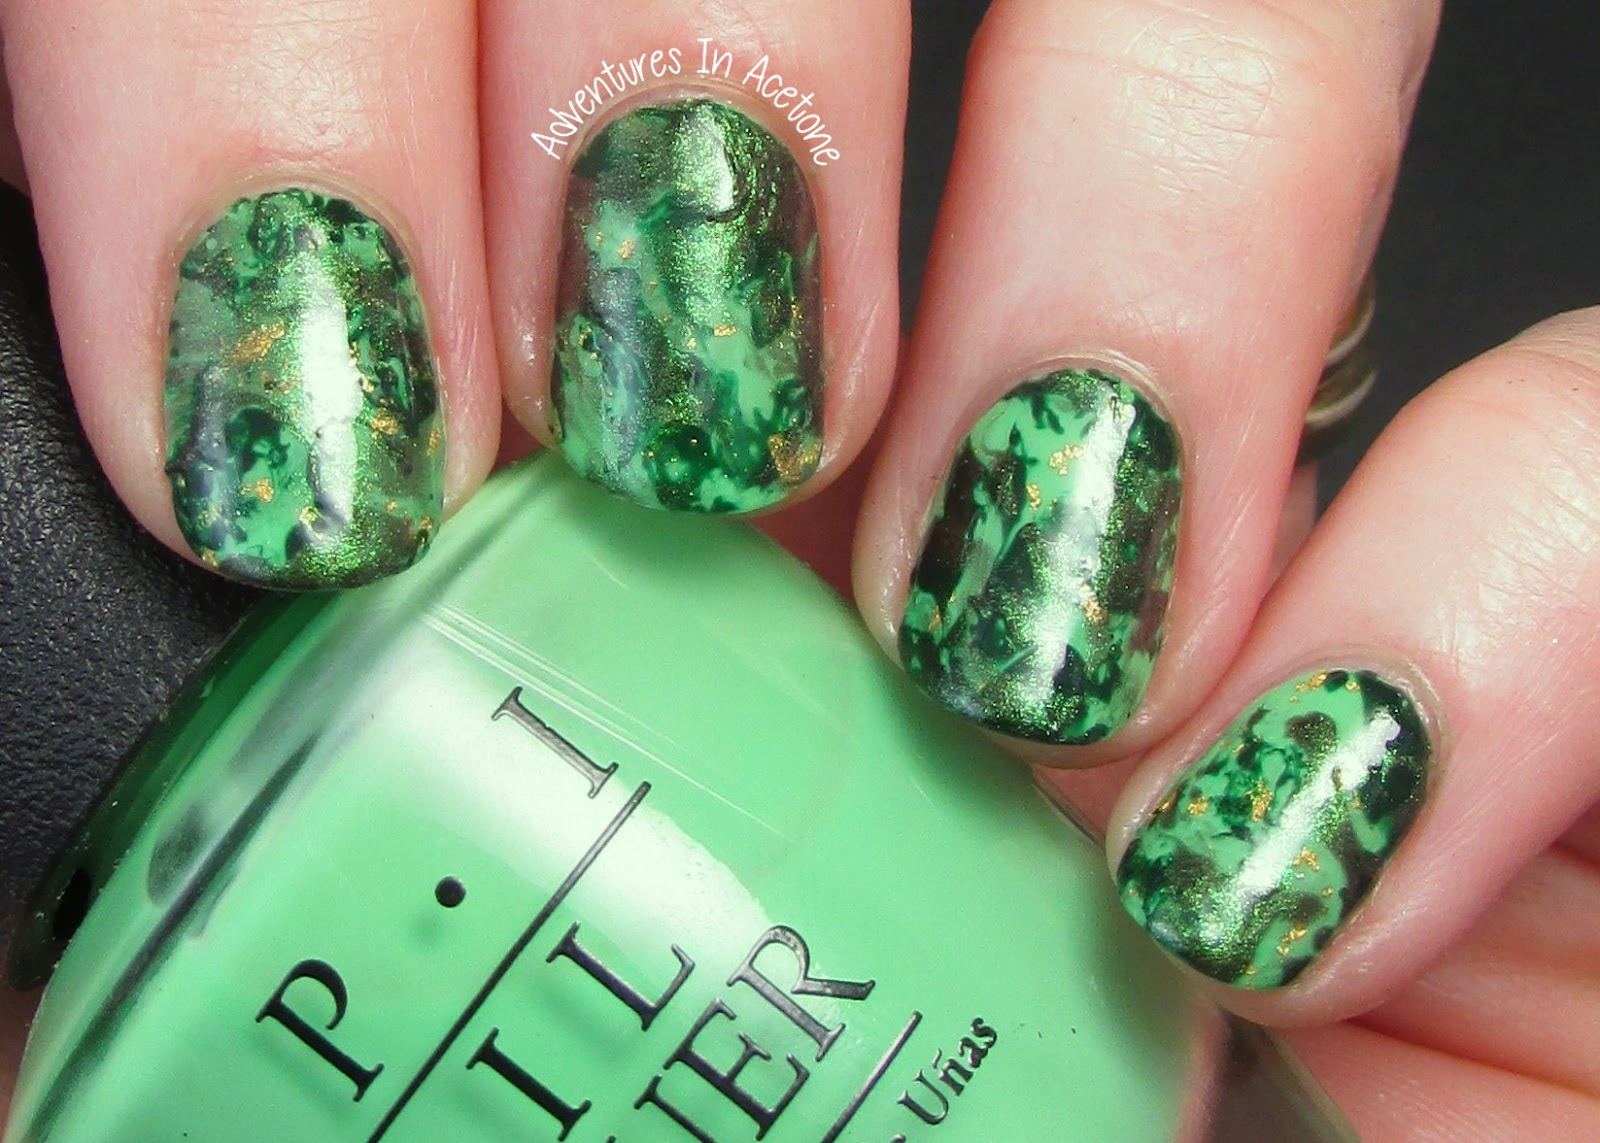 13 Days Of January, Day 7: Green Base (Spray Marble Nail Art ...